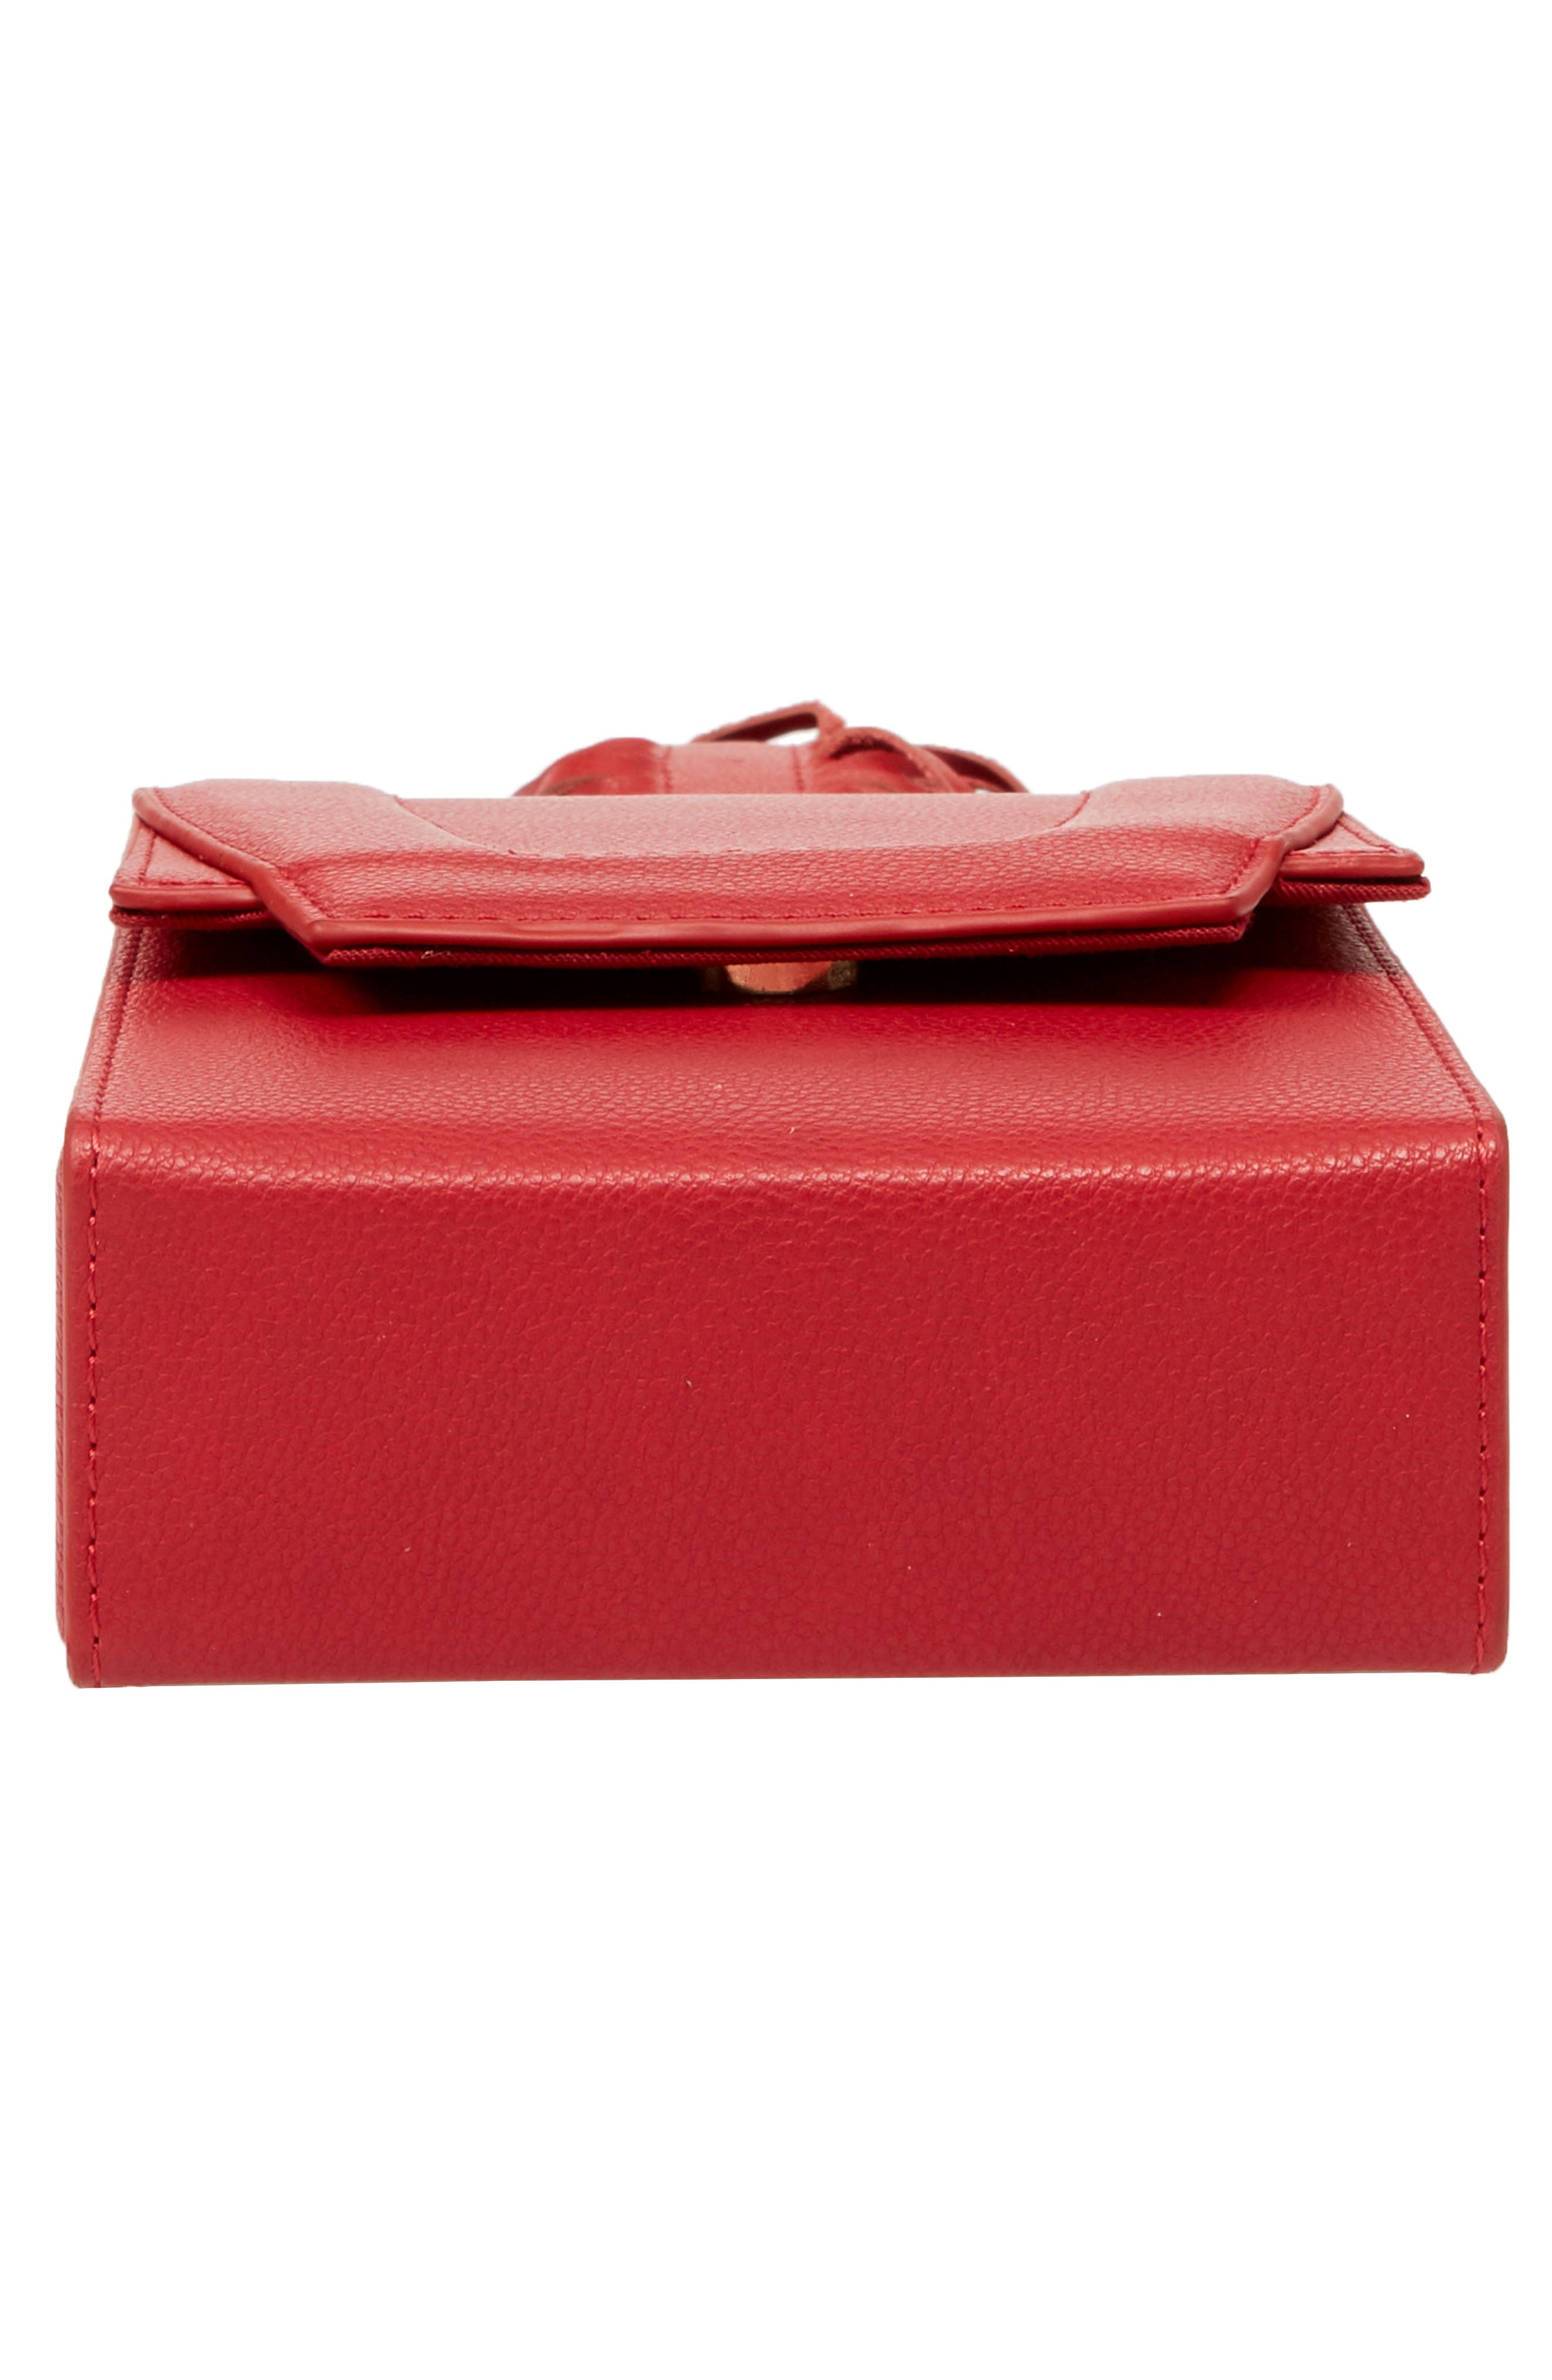 Alivia Leather Clutch,                             Alternate thumbnail 4, color,                             Red